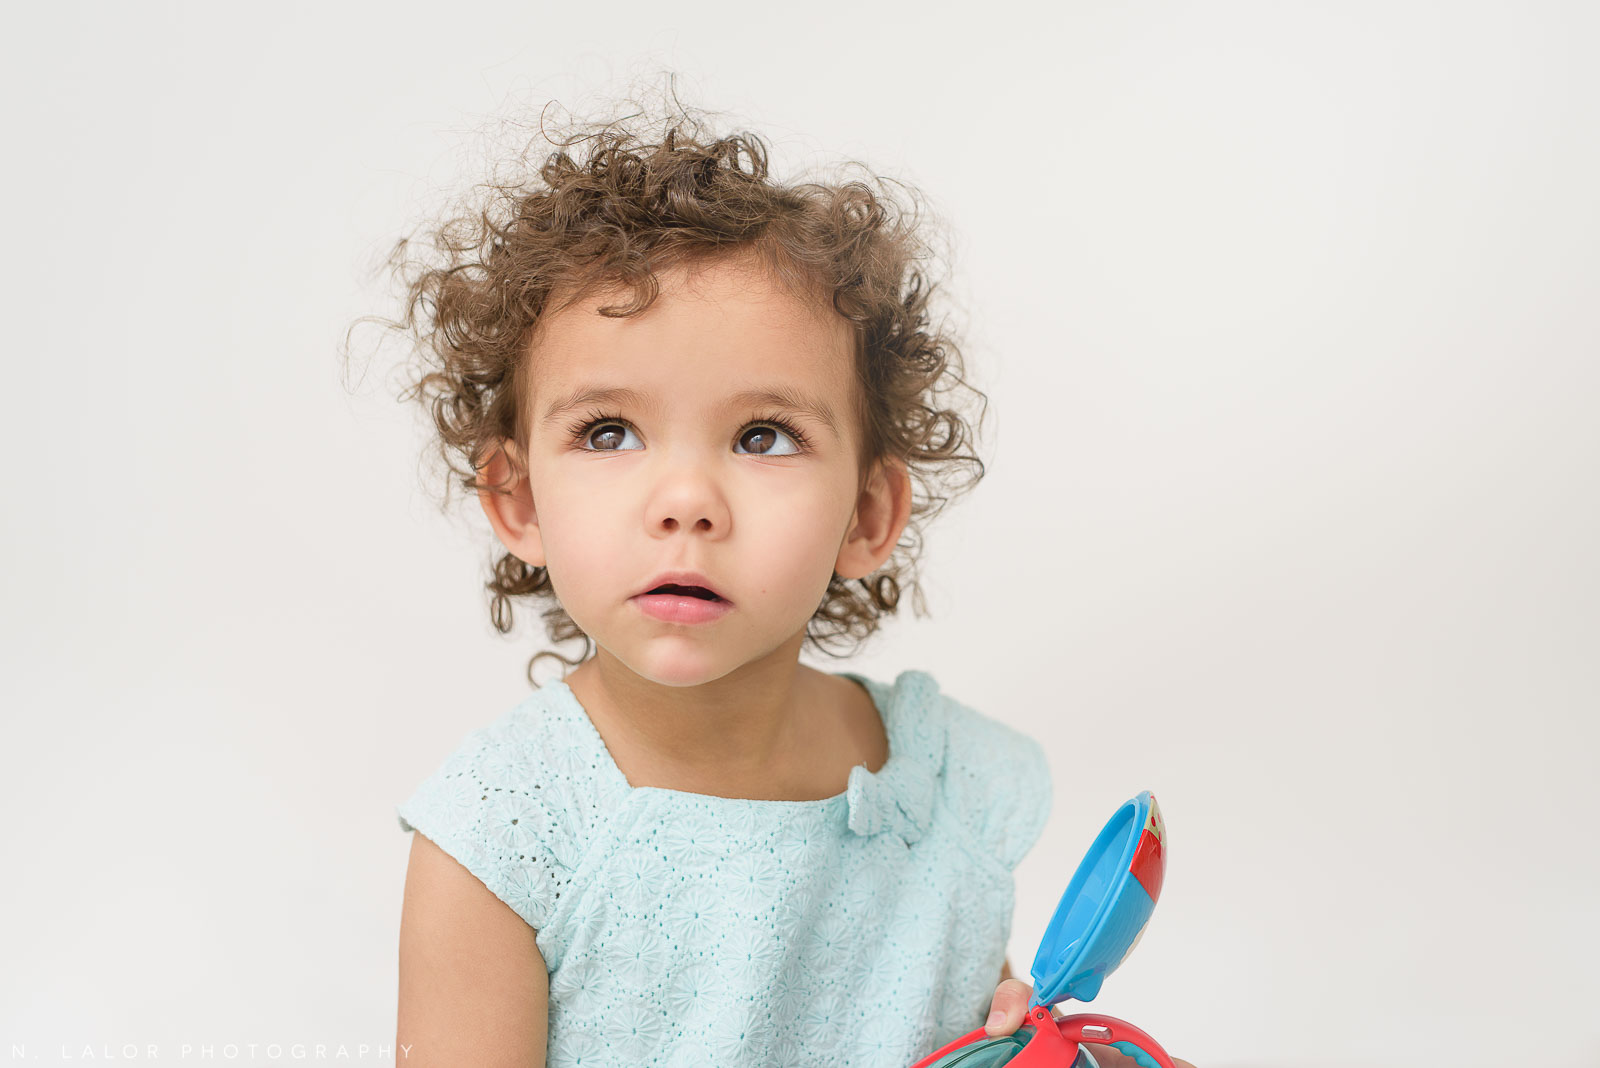 Studio portrait of a toddler girl by N. Lalor Photography in Greenwich Connecticut.